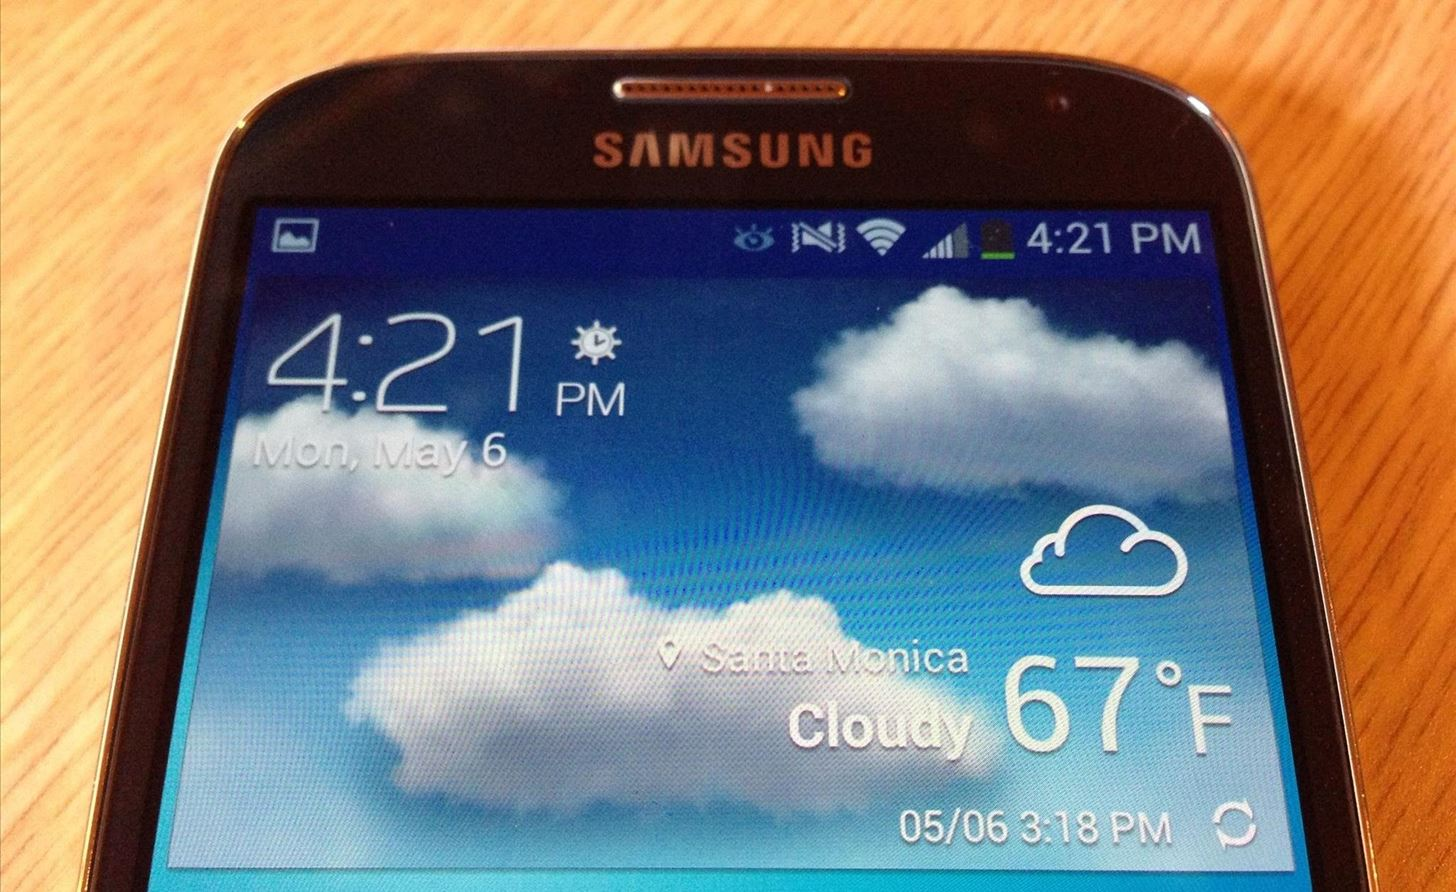 How to Fix the Home Button Lag on Your Samsung Galaxy S4